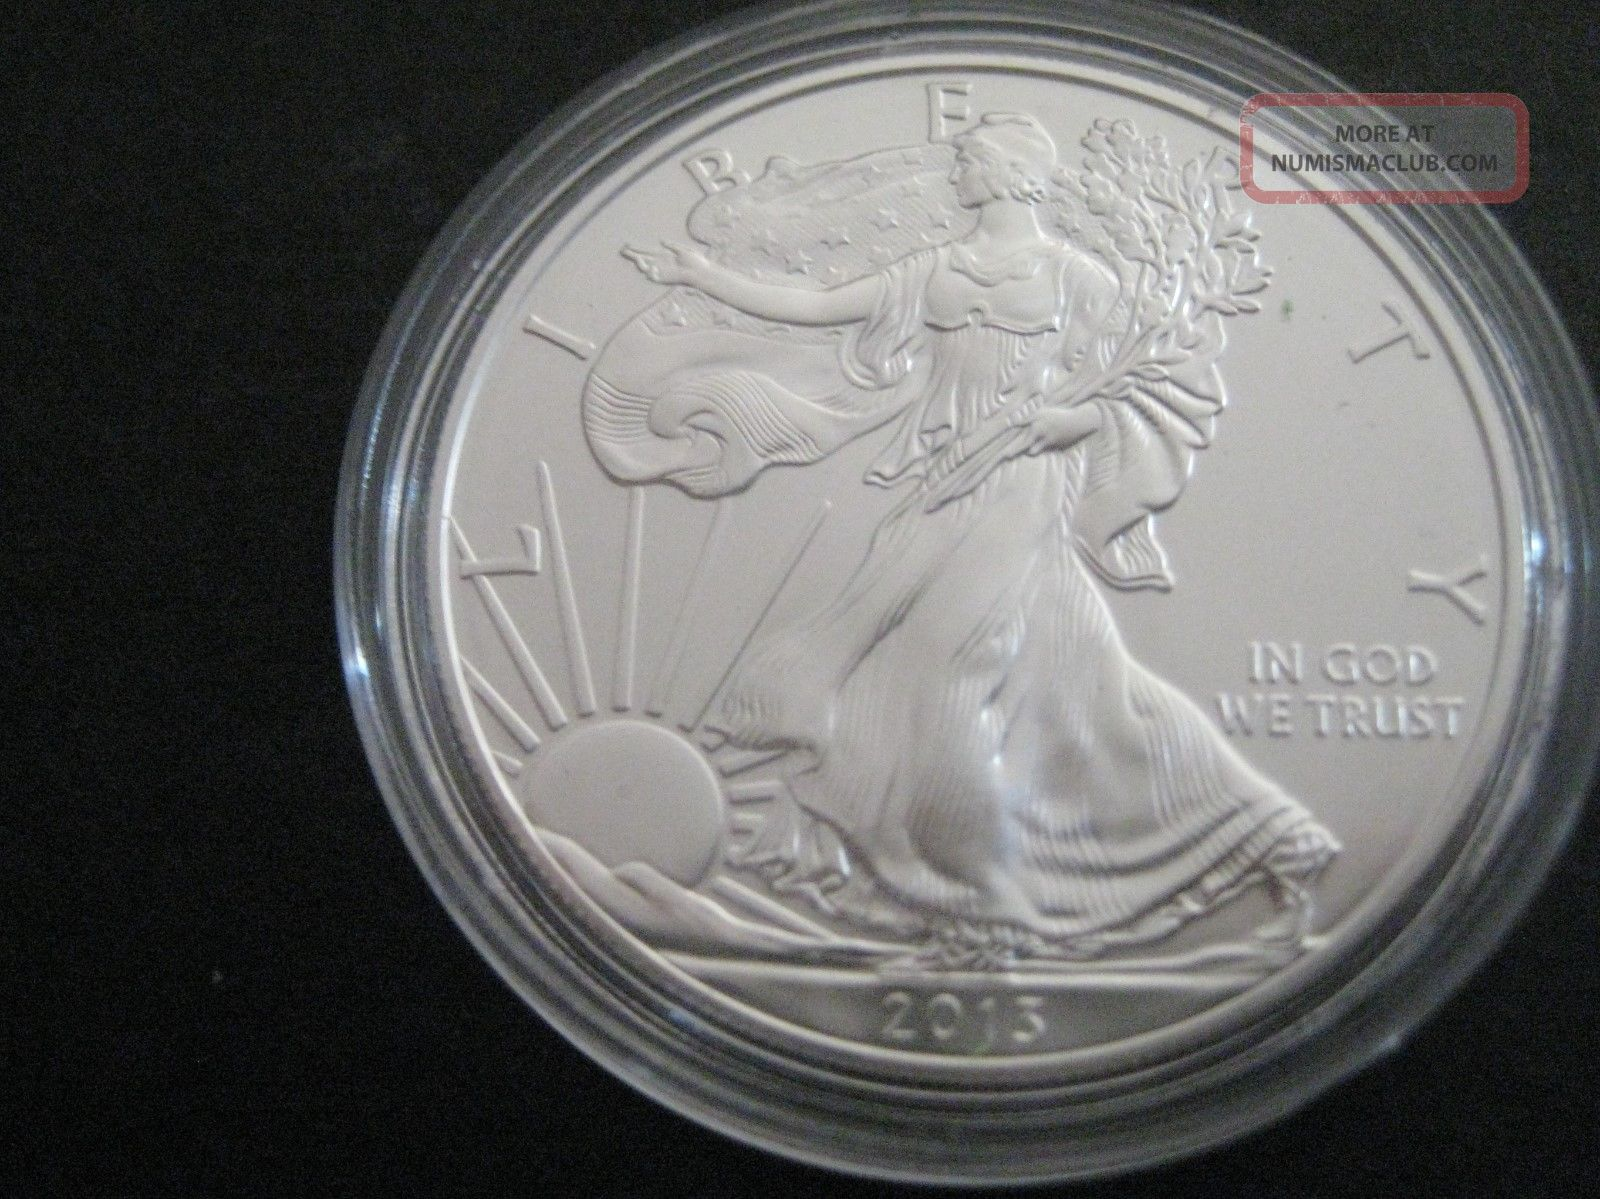 2013 Silver American Eagle One Ounce